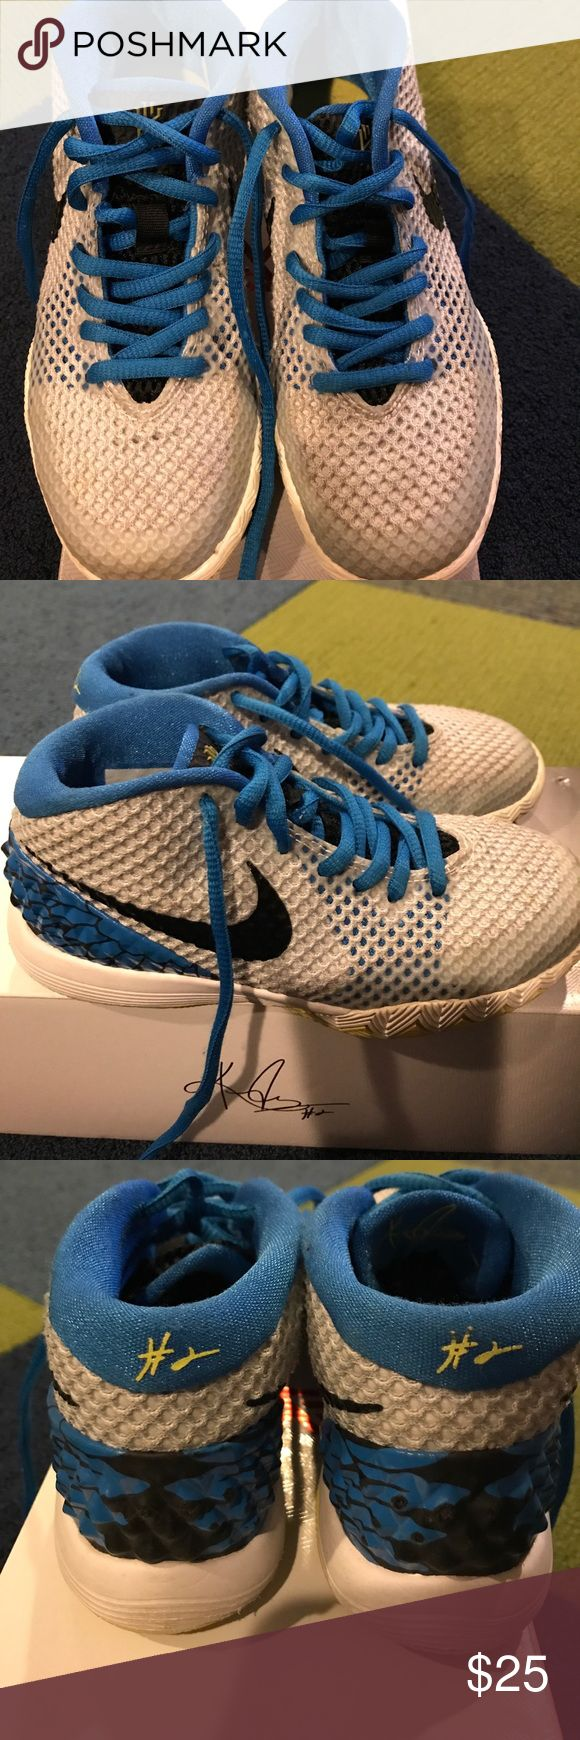 Kids Kyrie Irving Sneaker Kids Kyrie Irving sneaker.. great condition. Original Box included Nike Shoes Sneakers